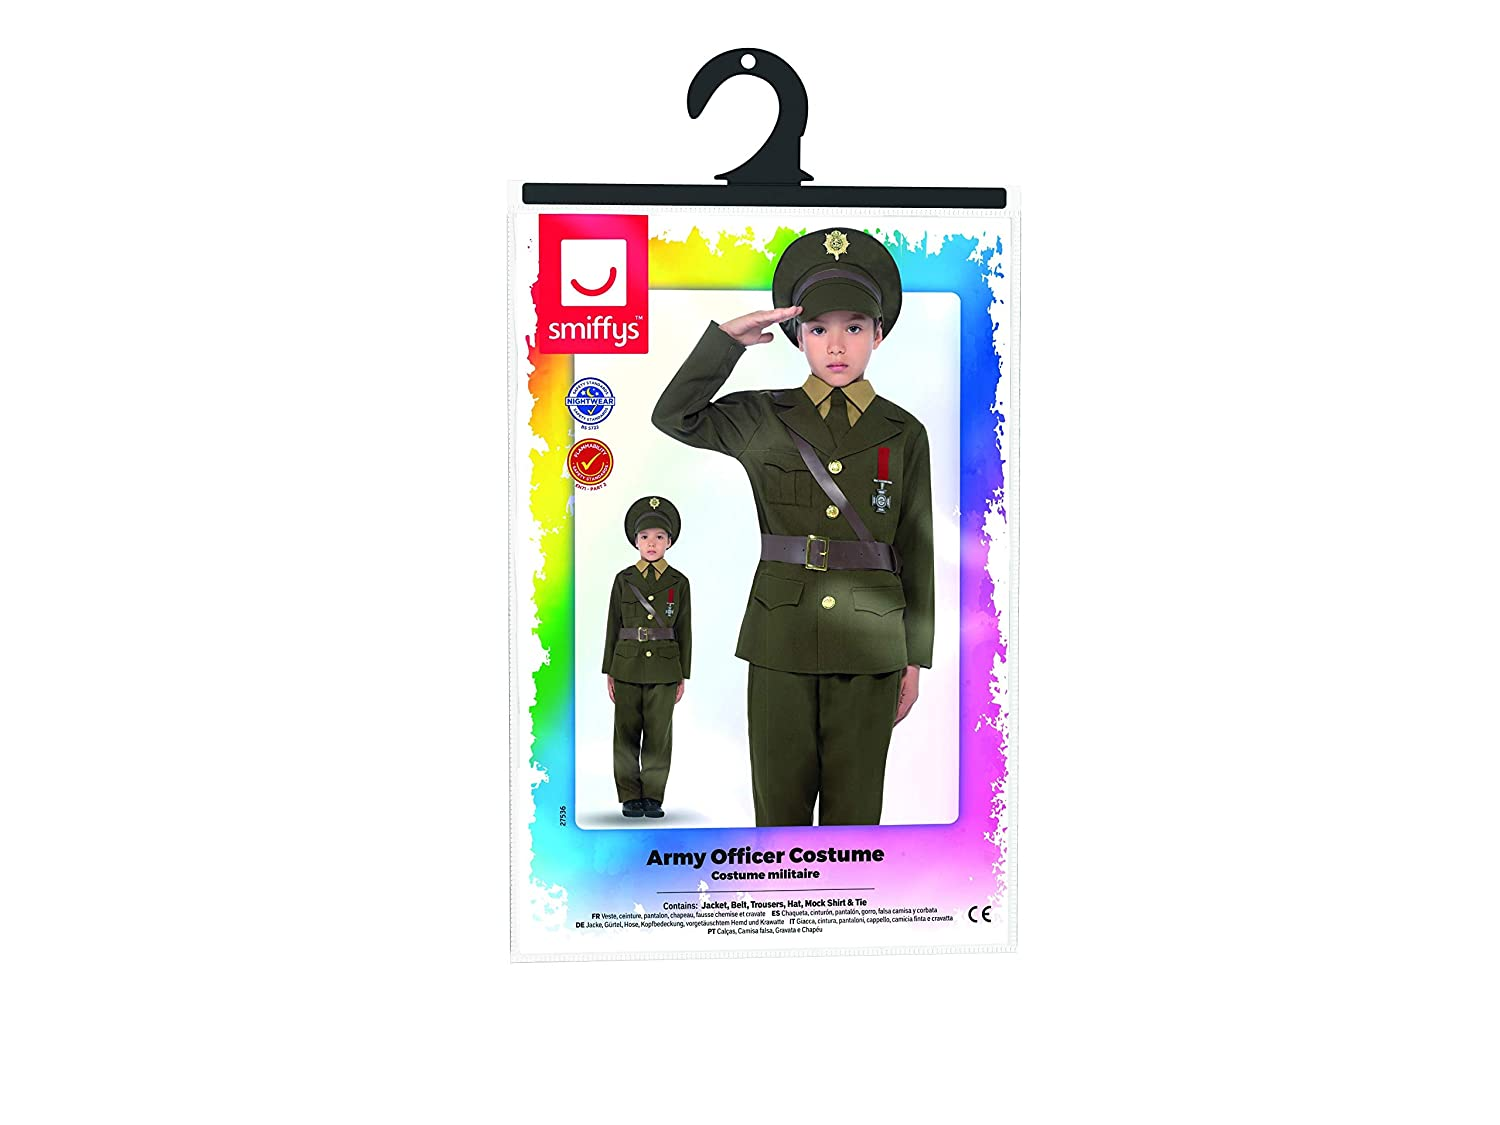 Amazon.com: Smiffys Childs Army Officer Costume: Toys & Games